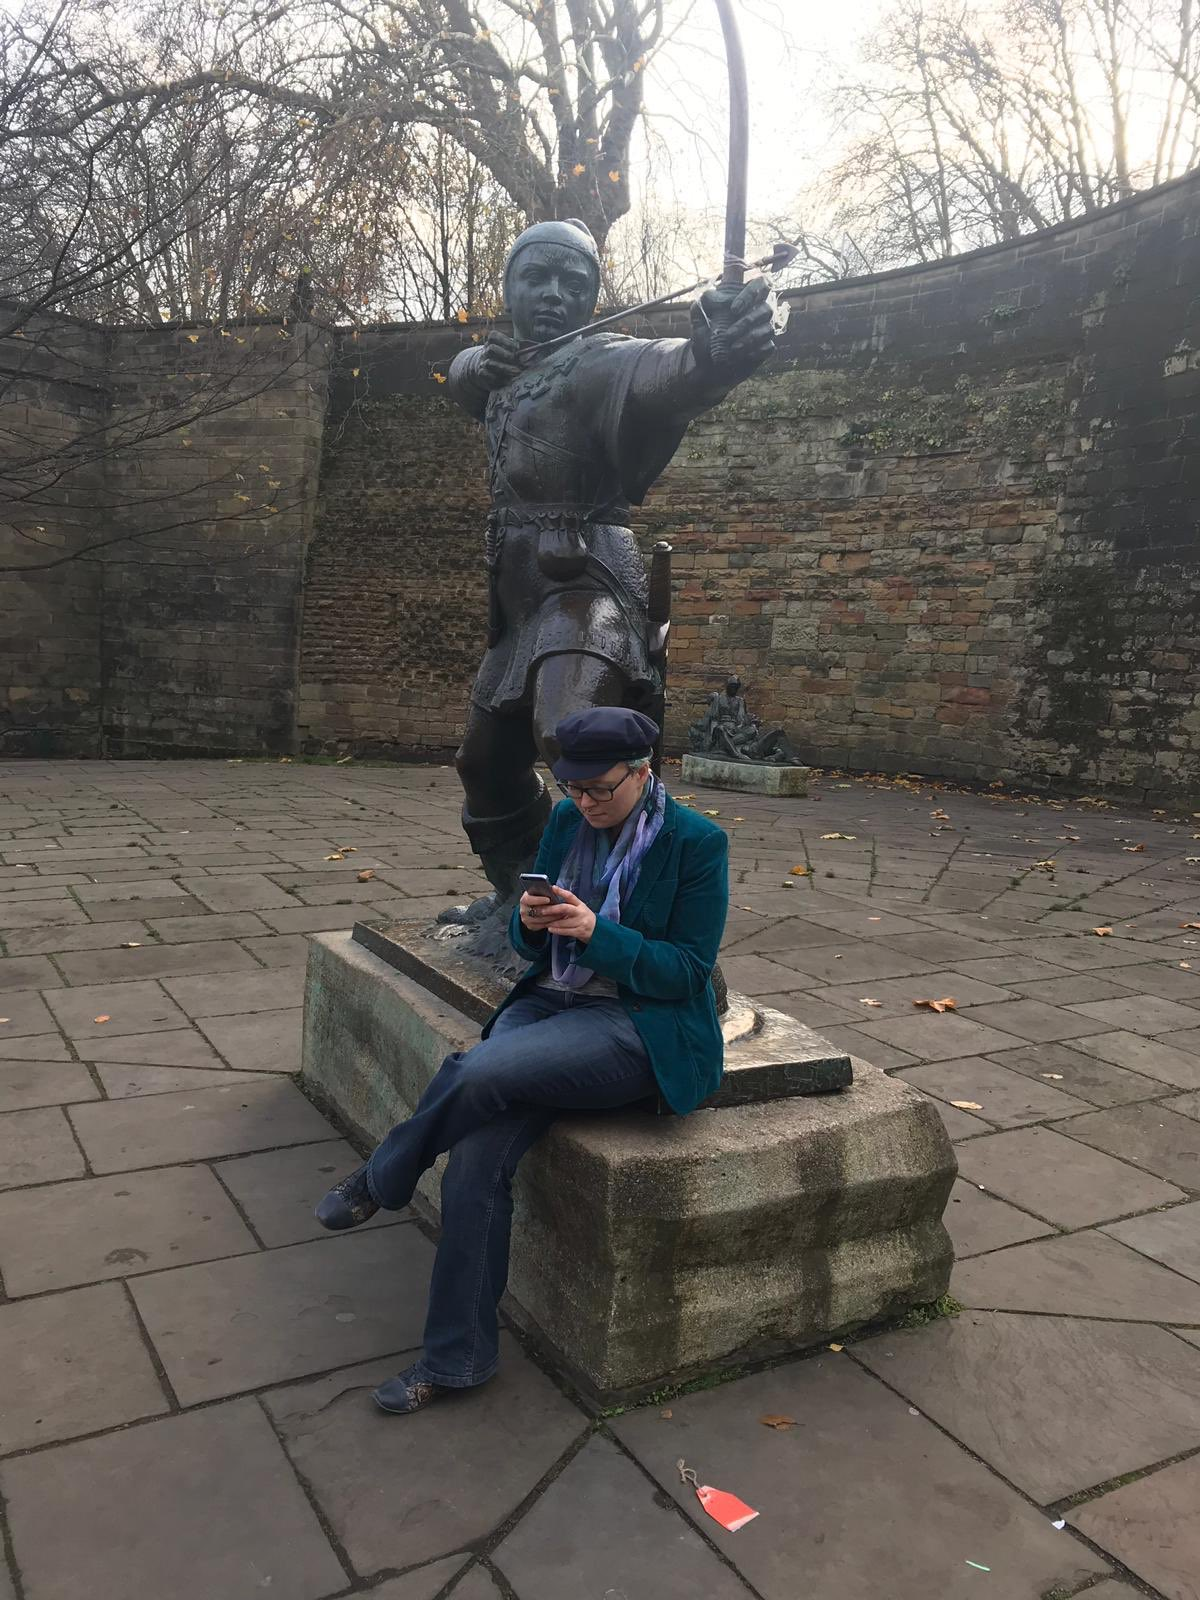 A person in a green jacket and blue hat sits on the pedestal of a statue of Robin Hood, writing on their phone.